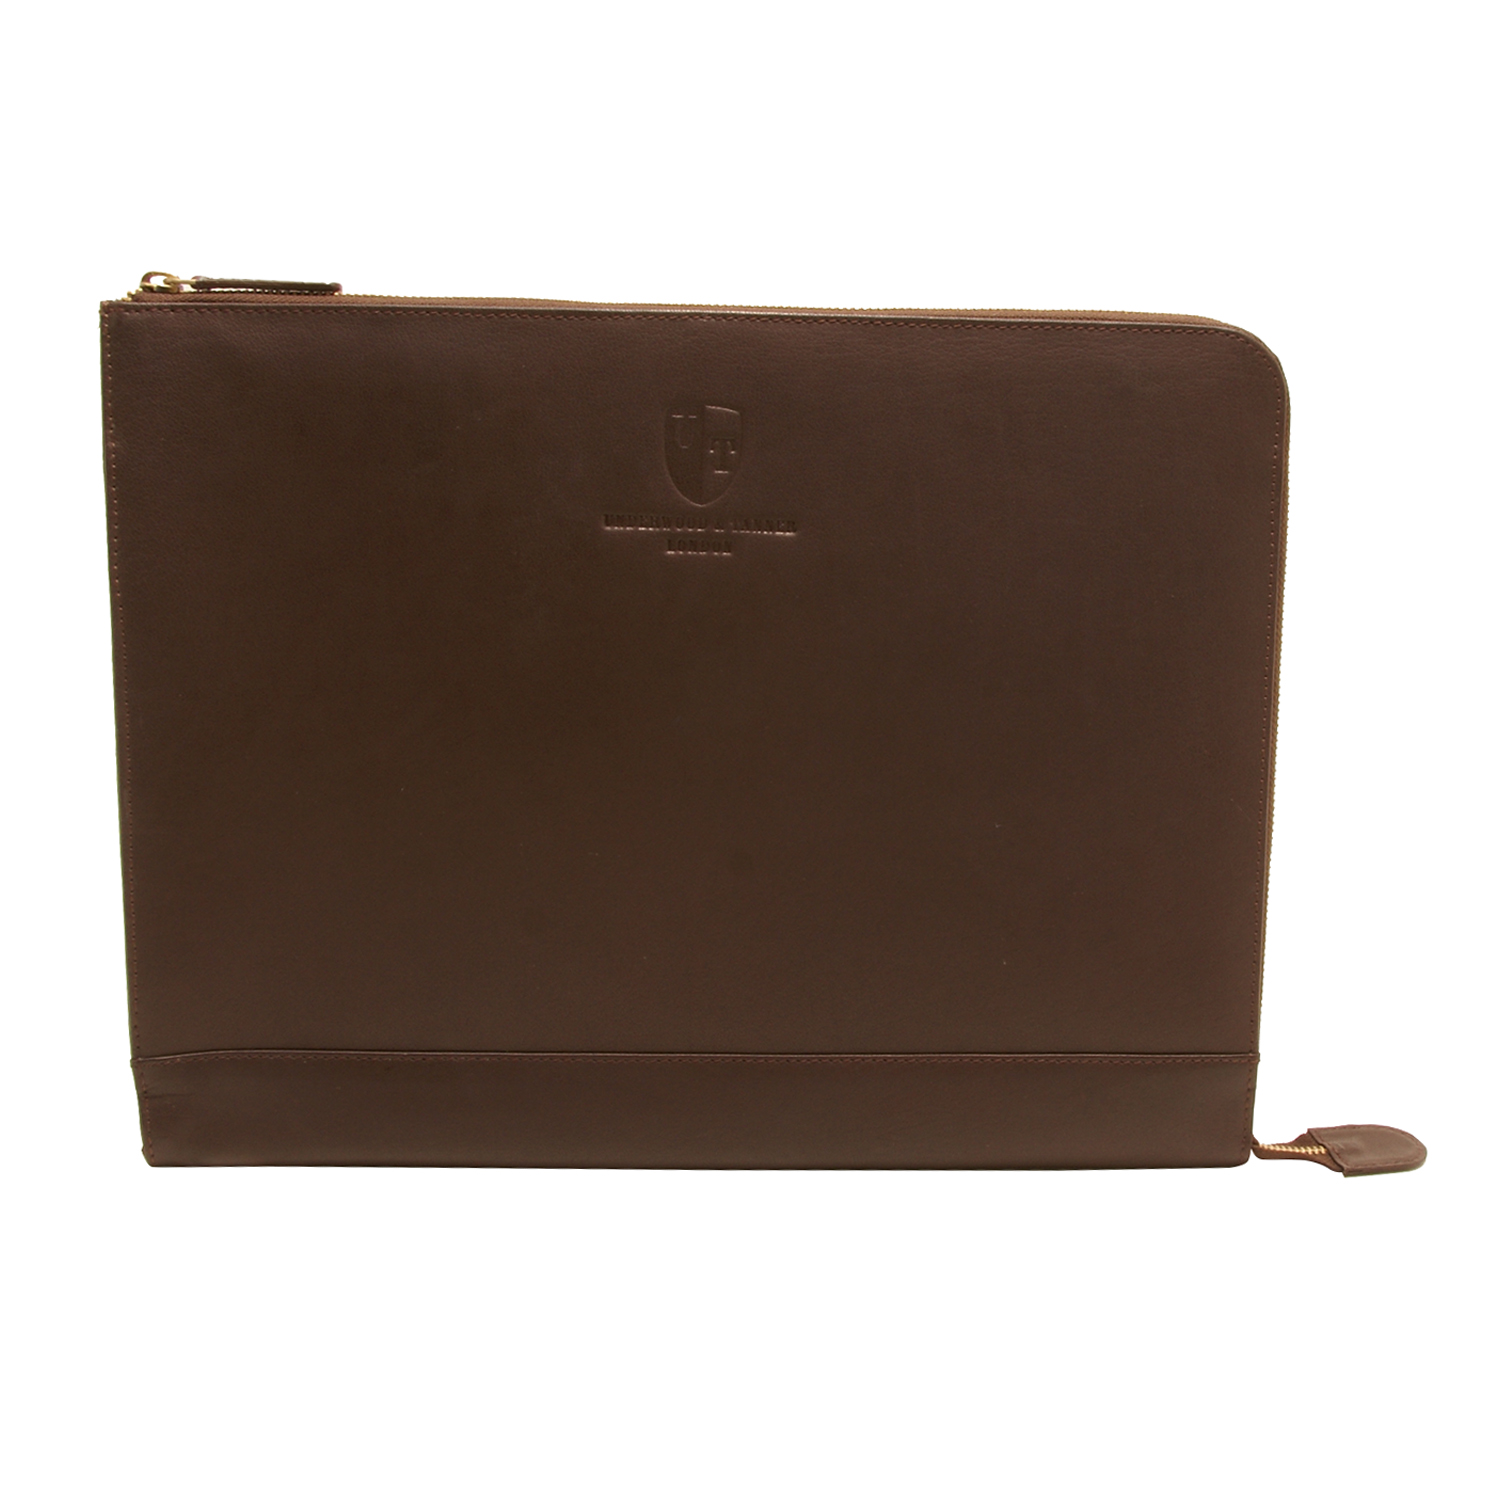 Underwood & Tanner – Brown Leather Shoreditch A4 City Document Case